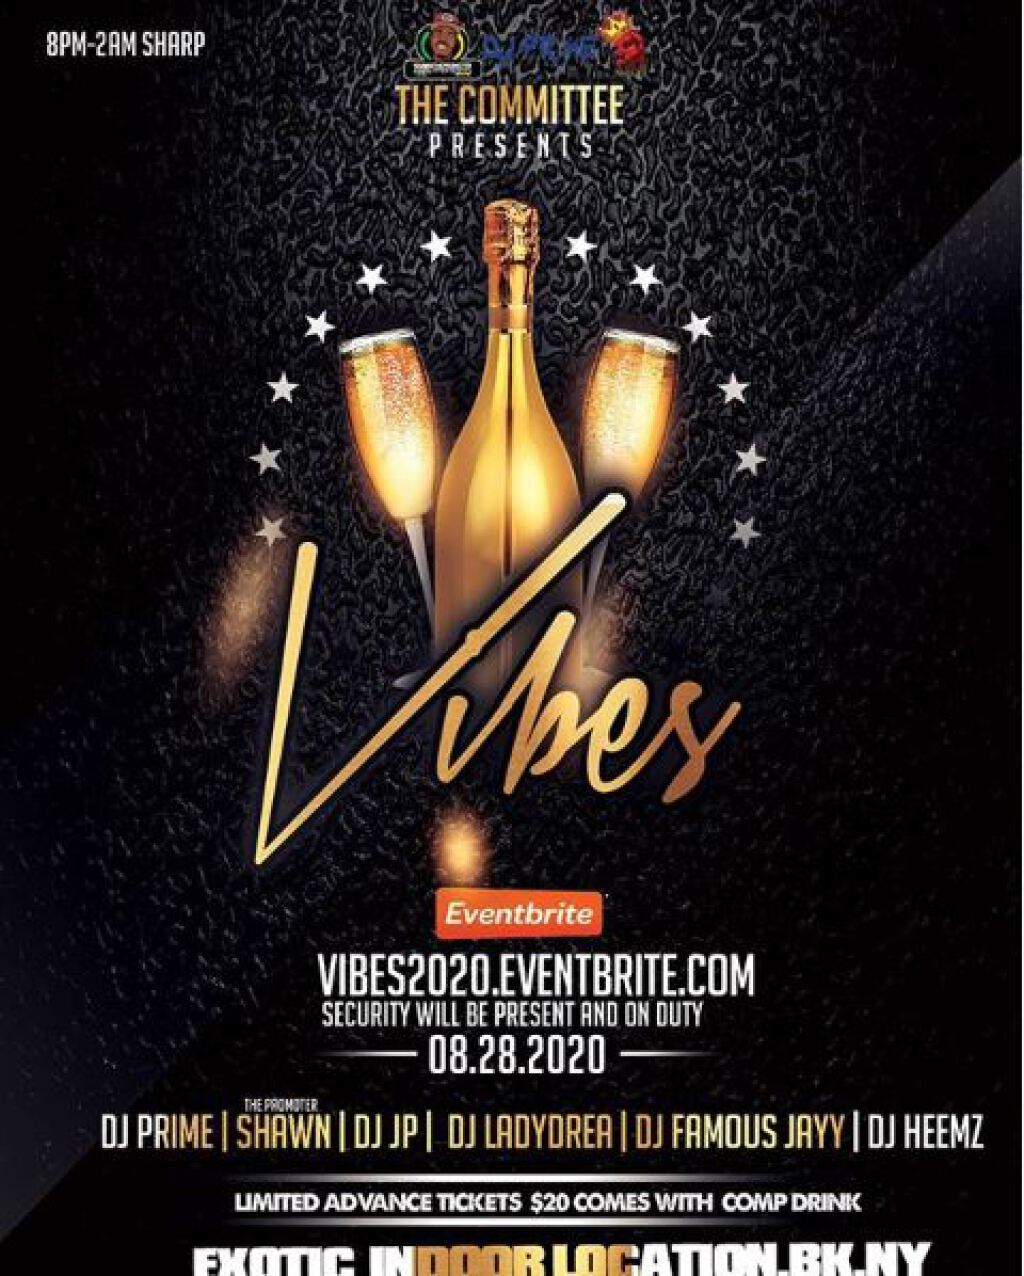 Vibes flyer or graphic.